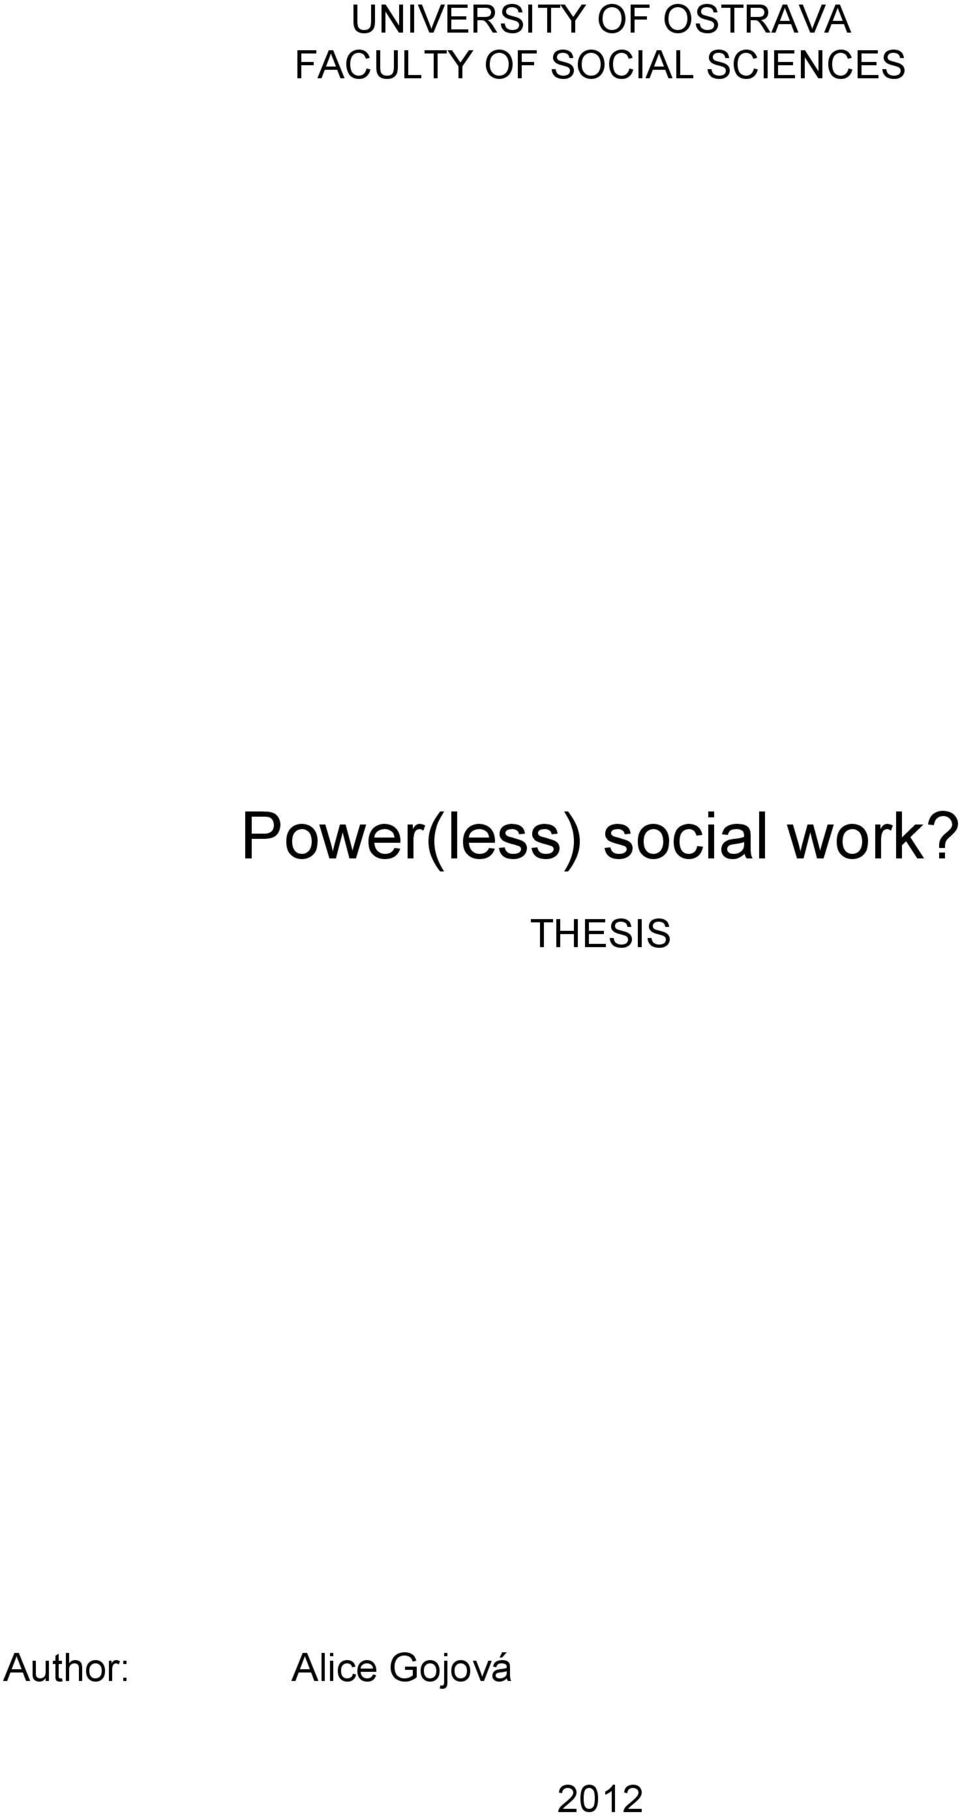 Phd social work thesis